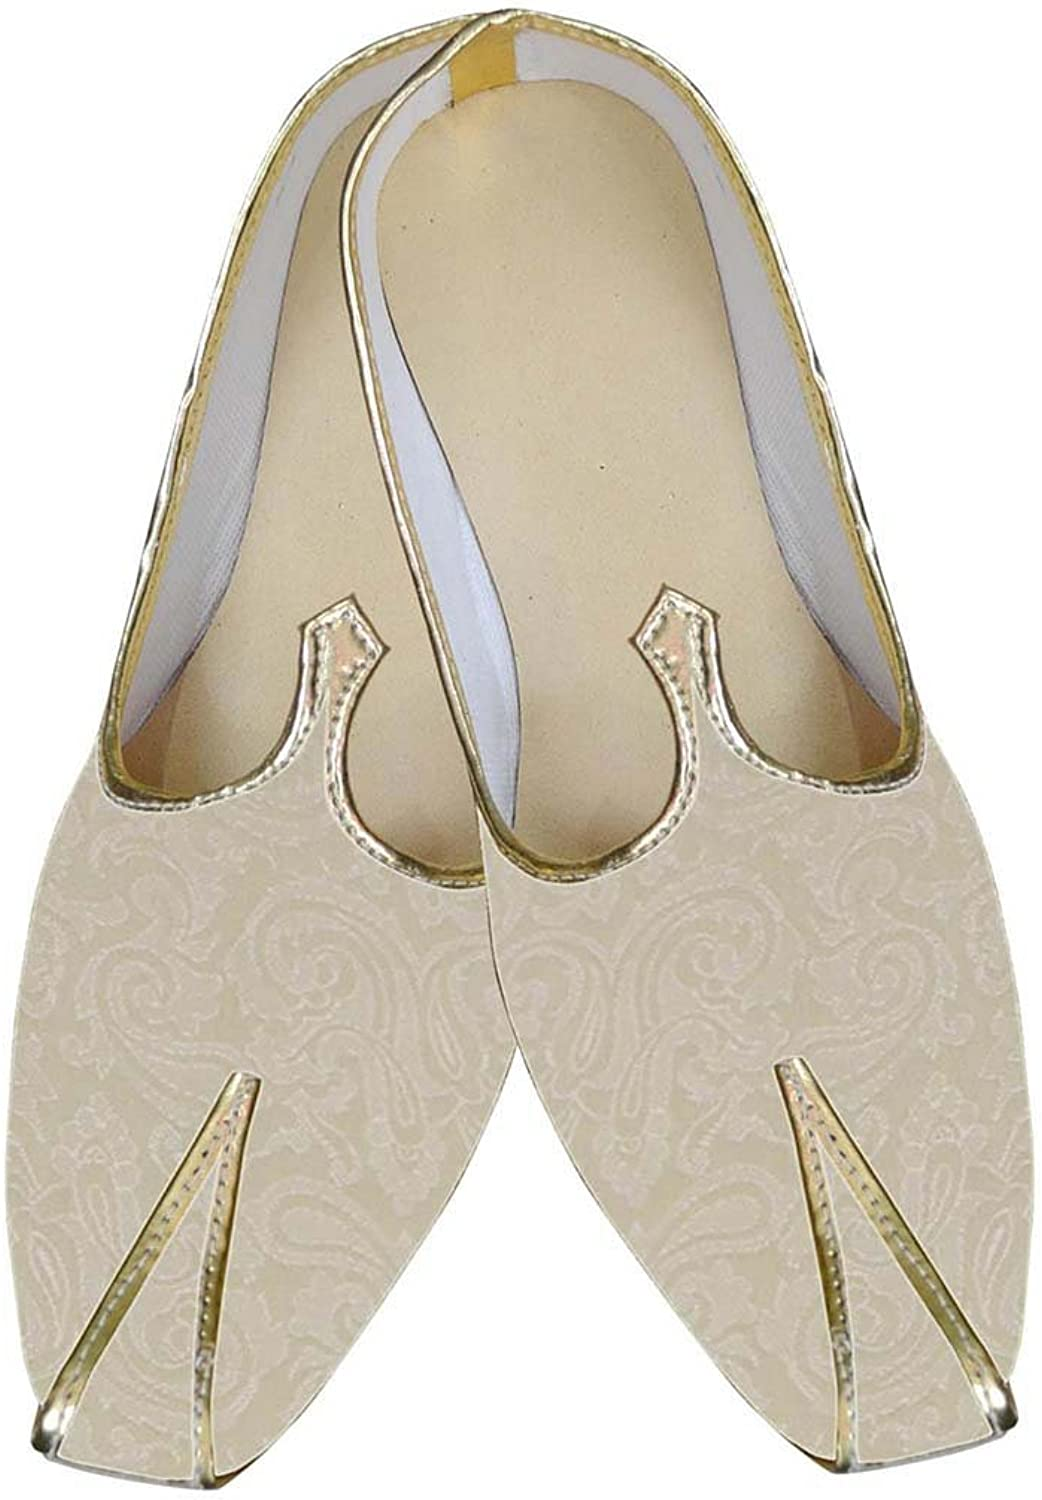 INMONARCH Mens Ivory Wedding shoes Partywear MJ0030